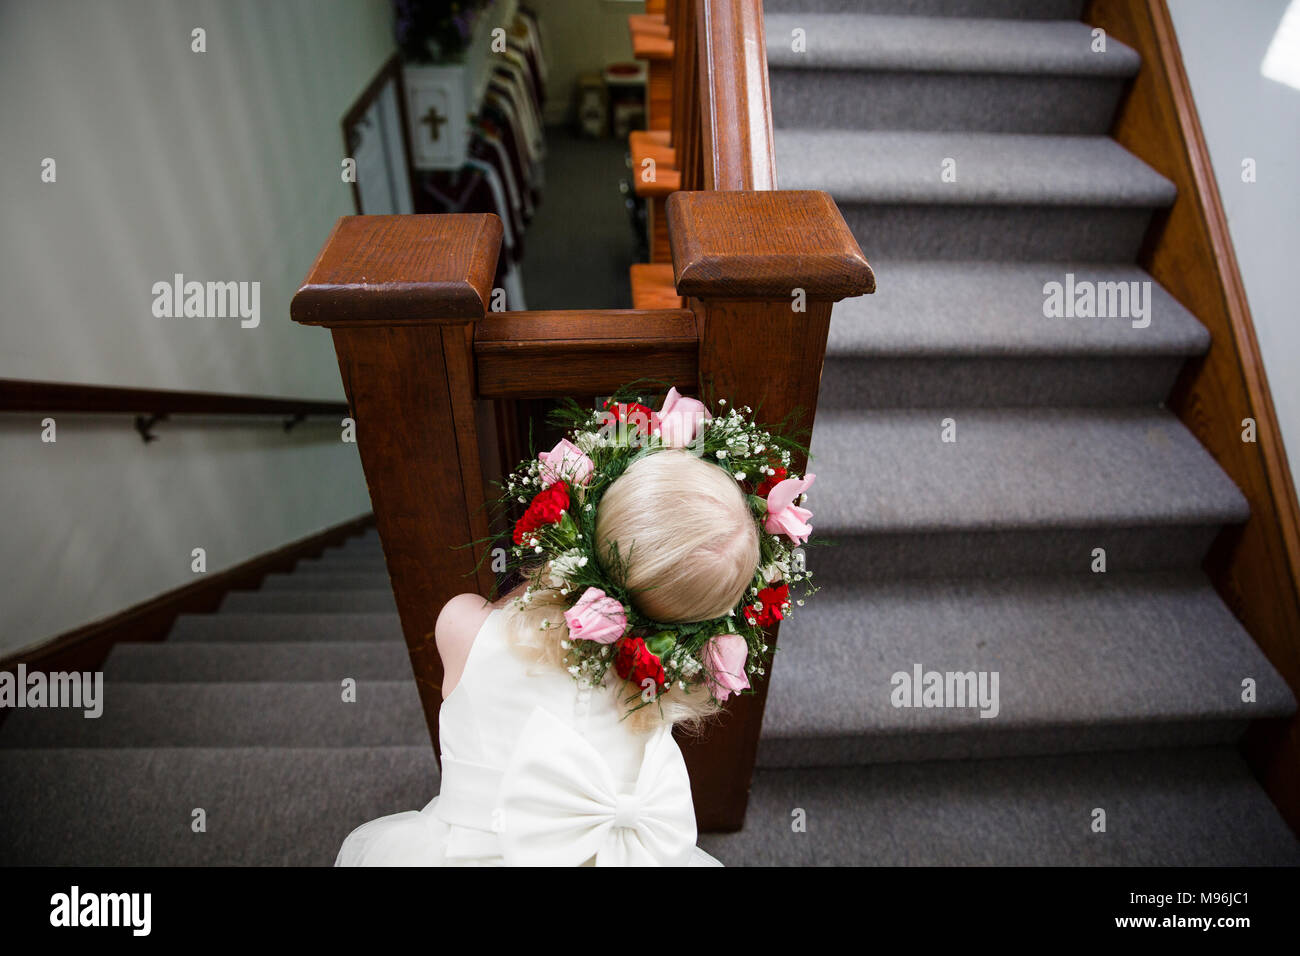 Girl in white dress looking through stair banisters - Stock Image